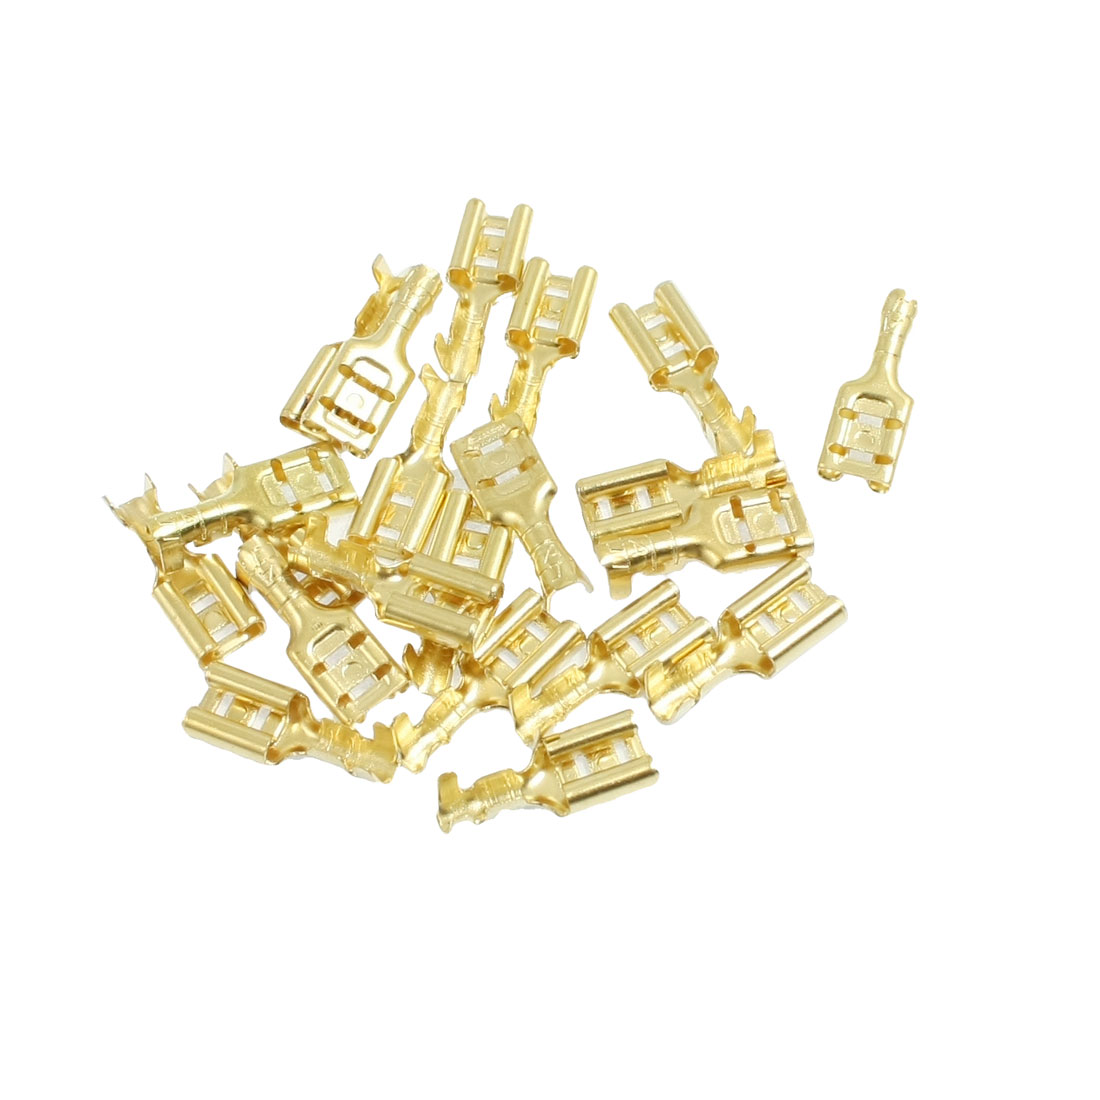 20 Pcs Gold Tone Brass Crimp Terminal 6.7mm Female Spade Connectors